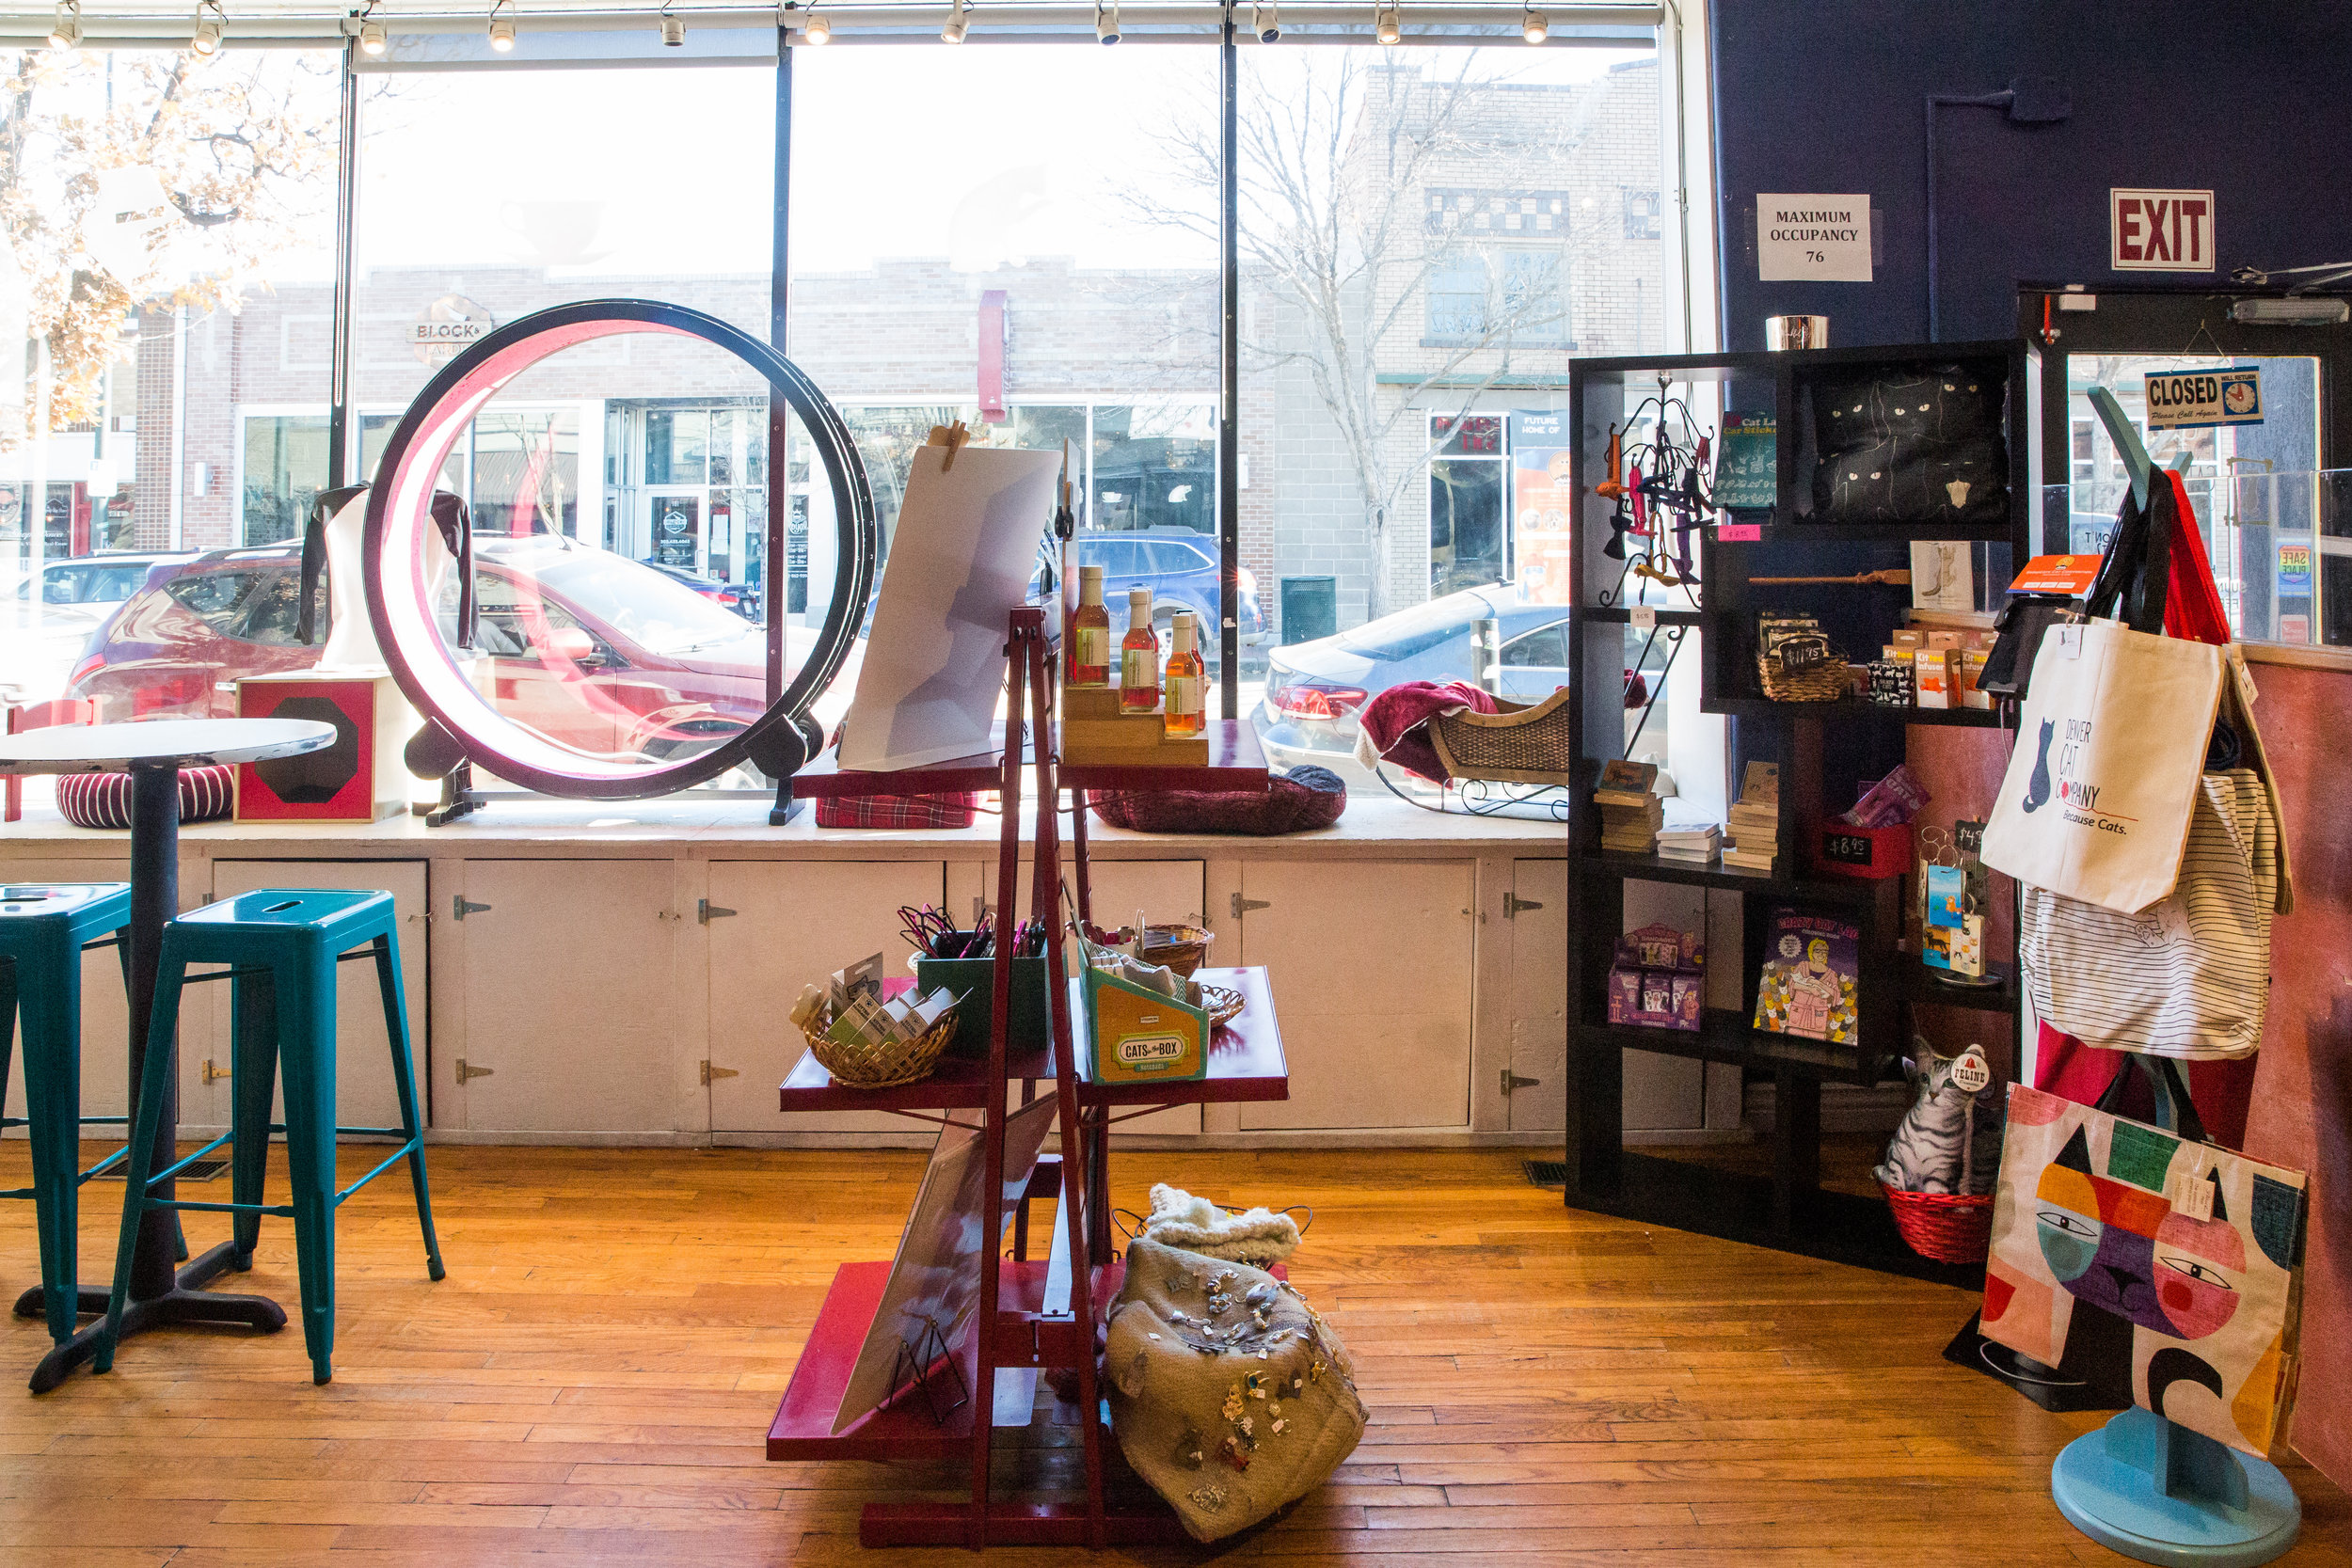 Get your shopping done!  Image credit: Danielle Lirette Photography